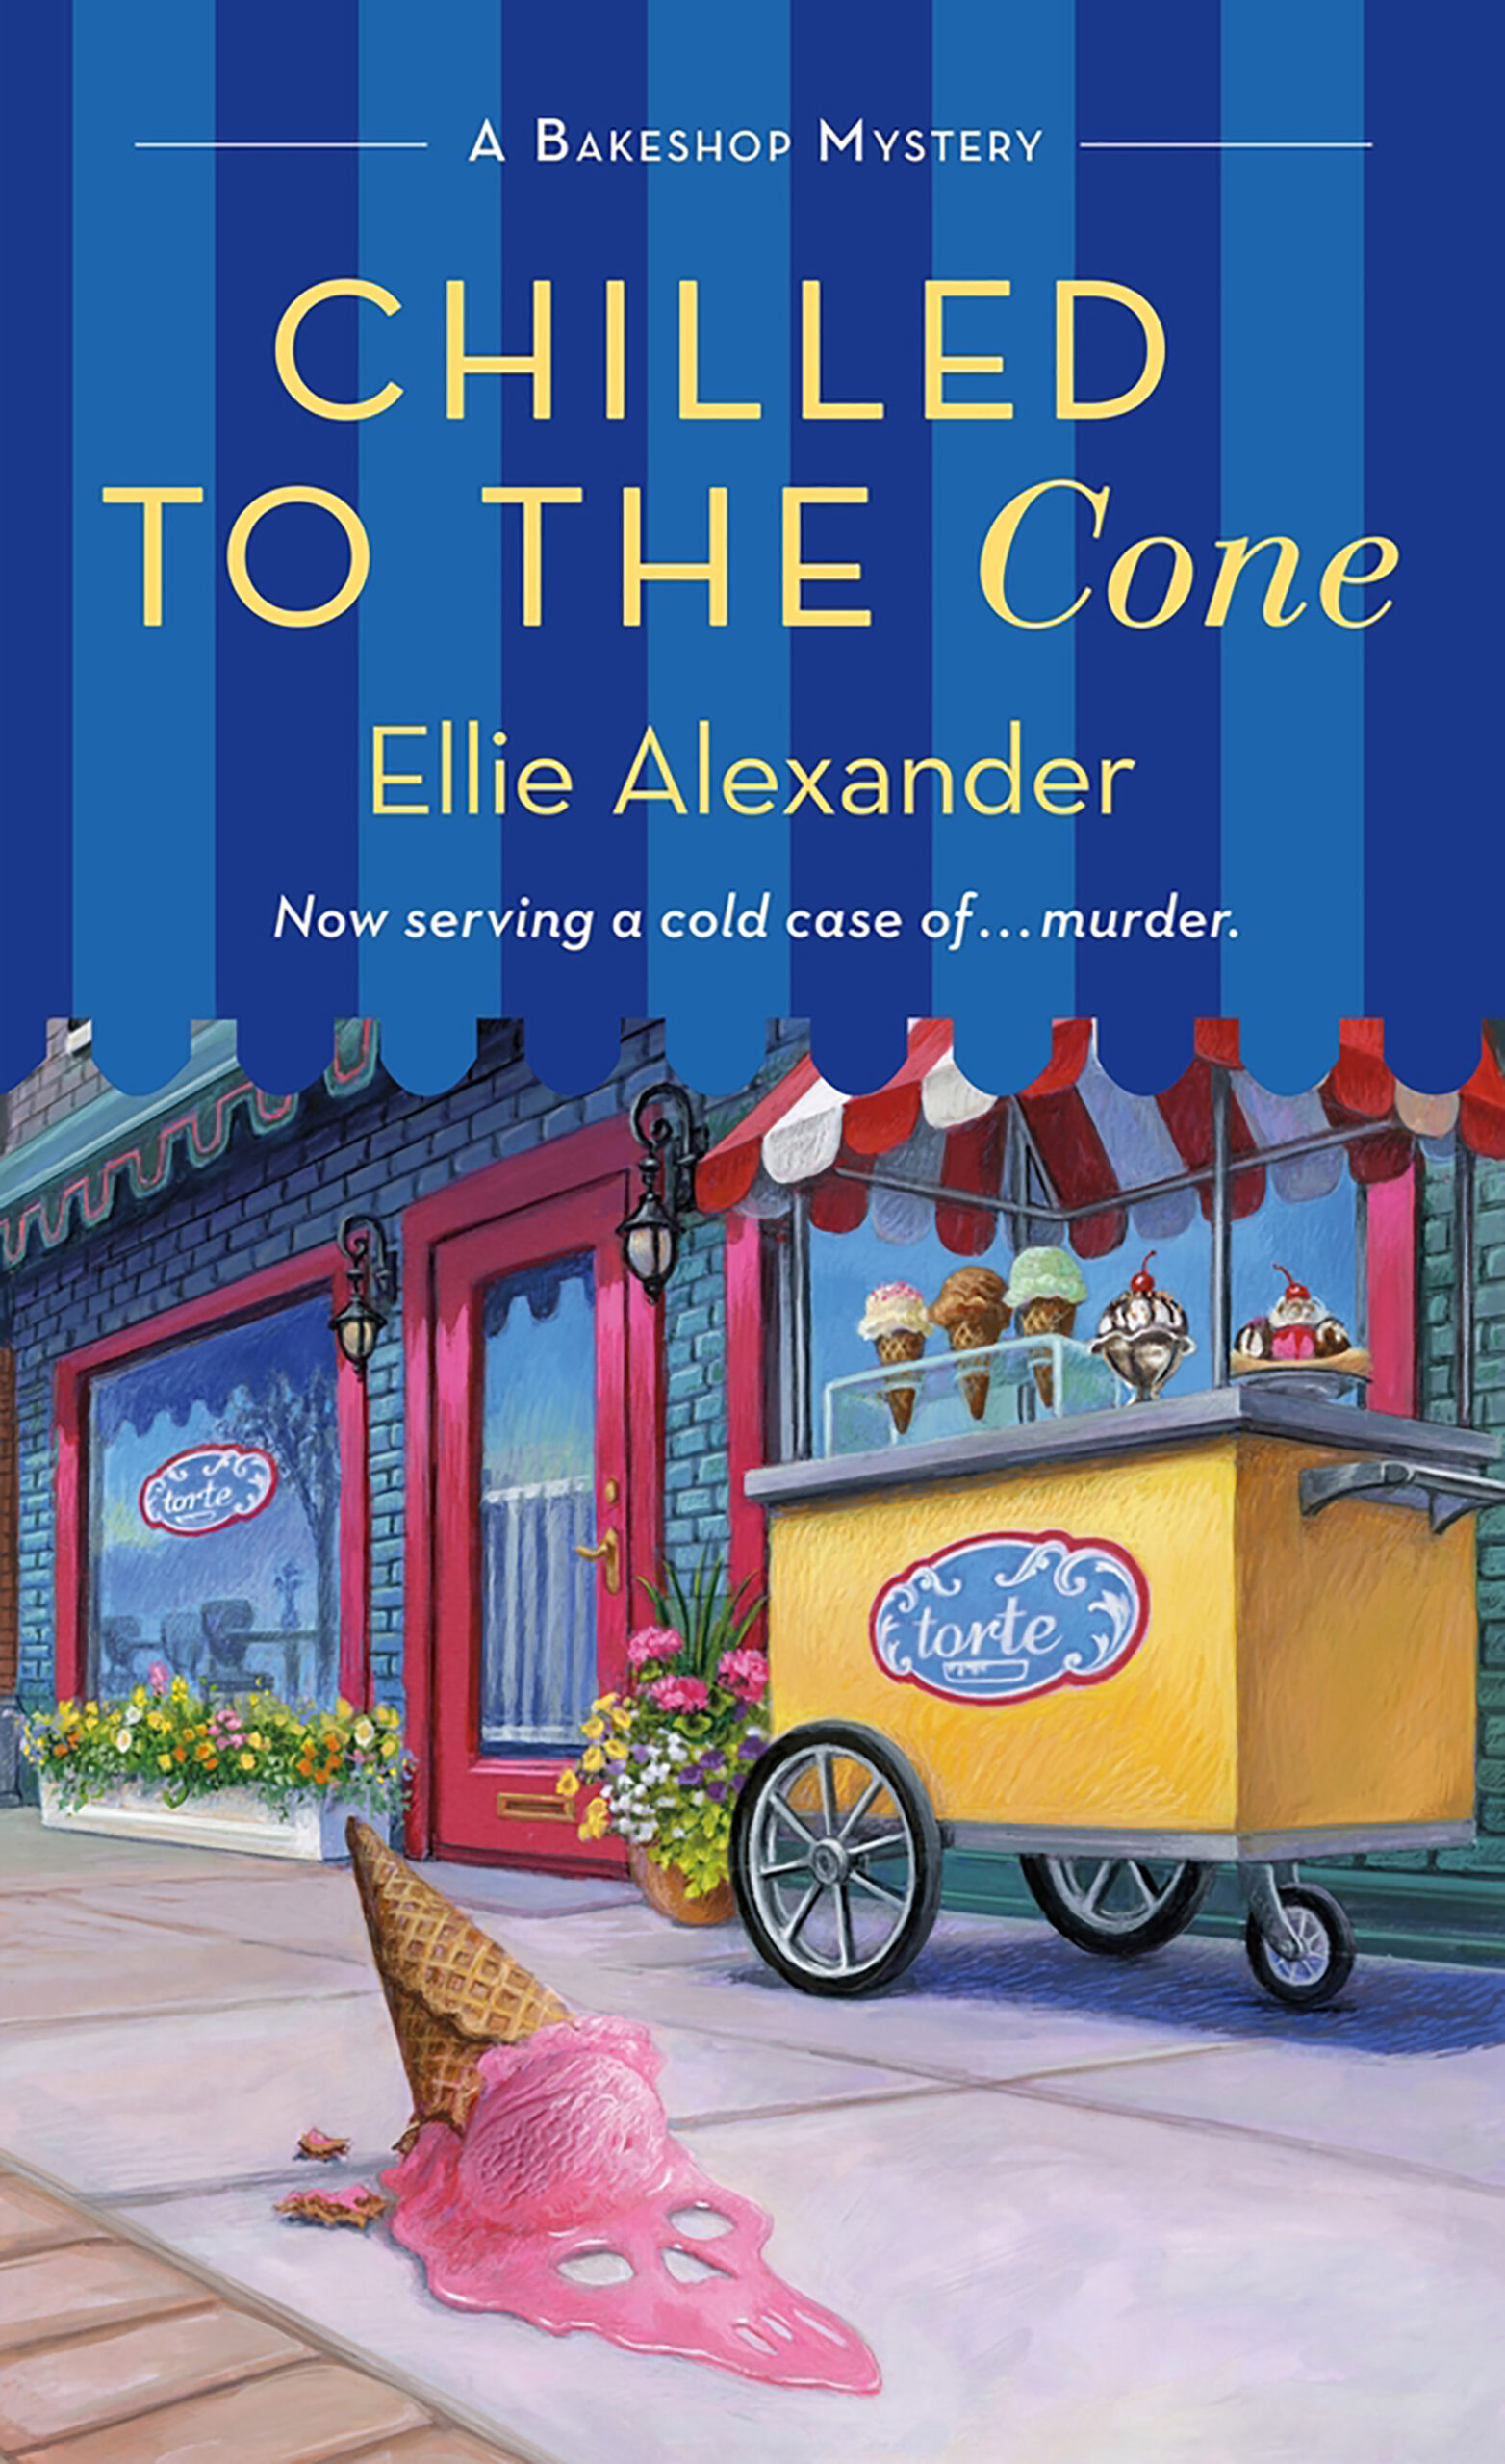 chilled-to-the-cone-ellie-alexander